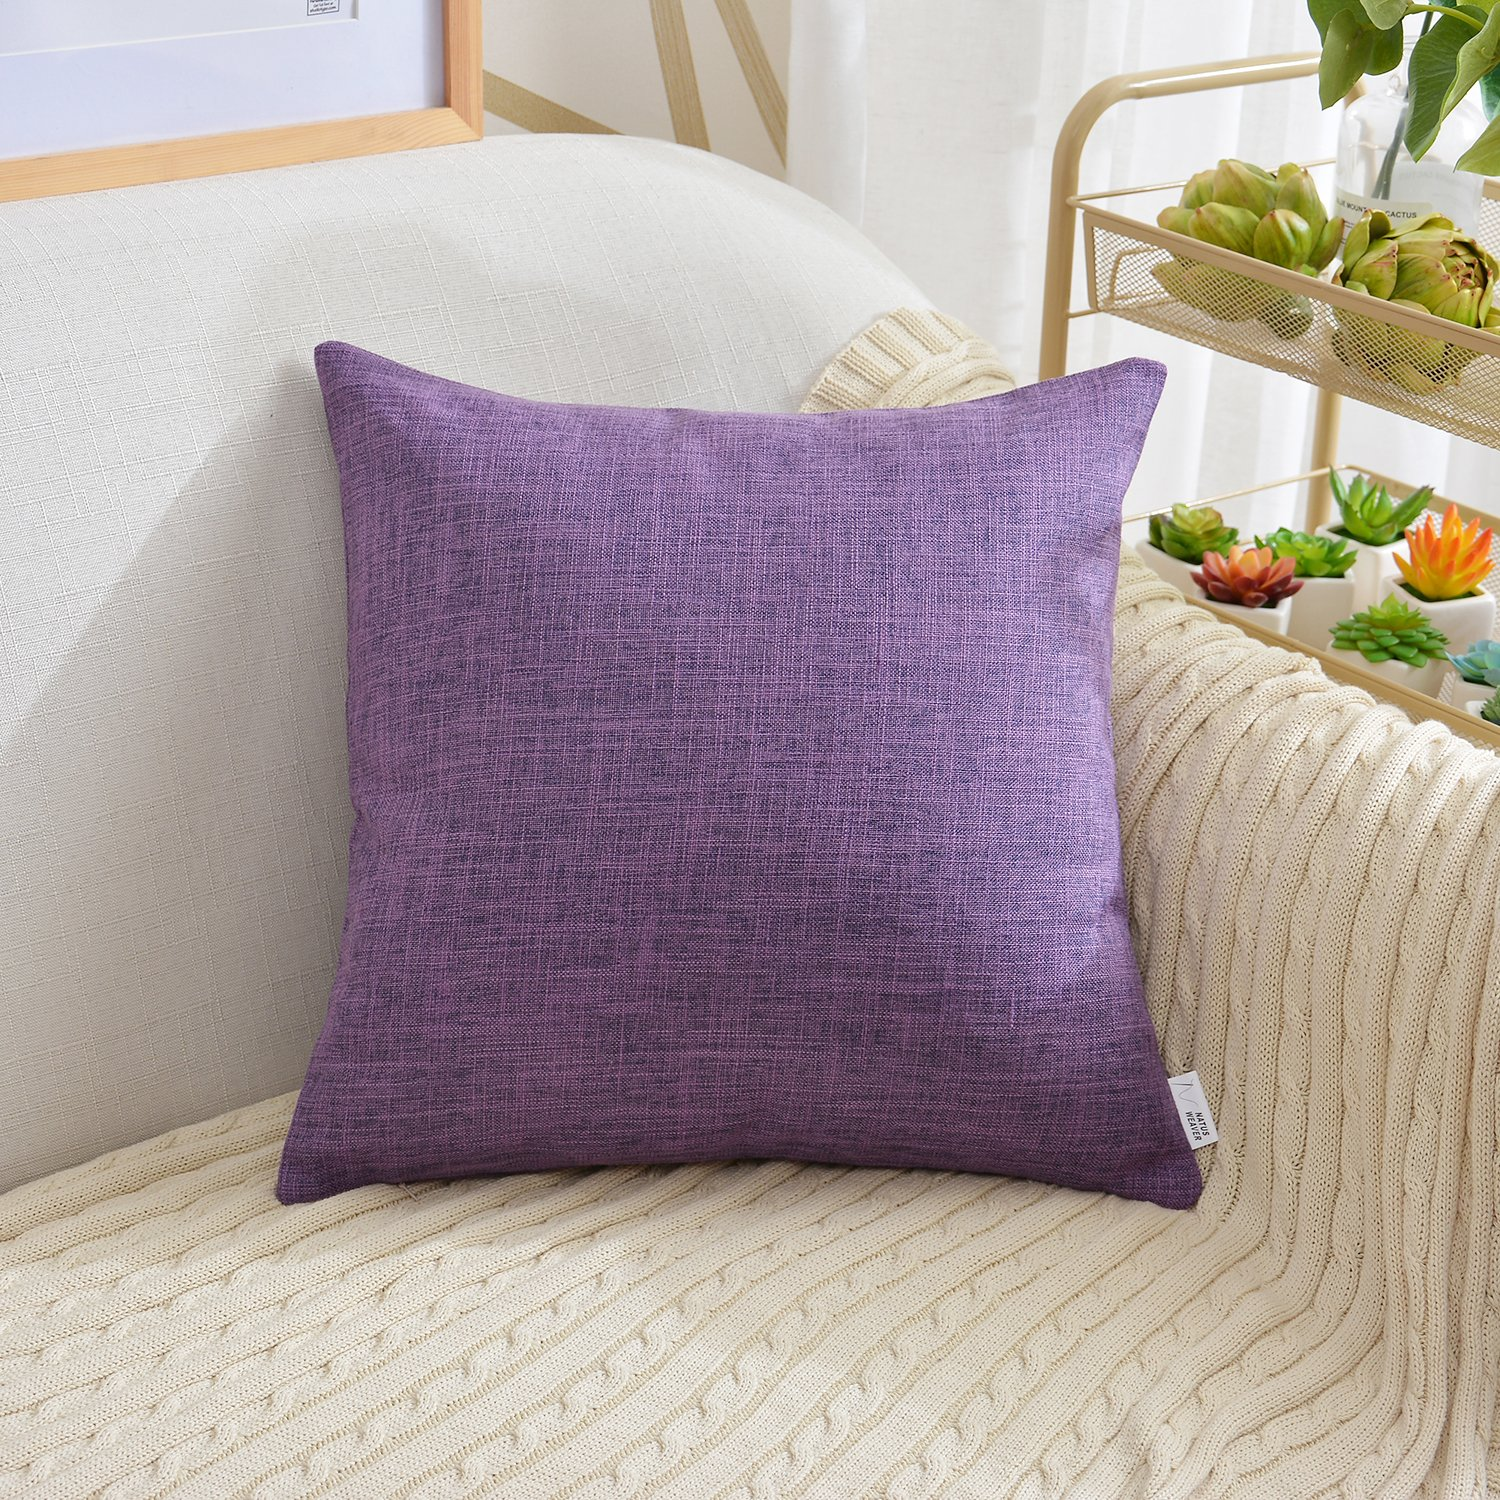 NATUS WEAVER Soft Home Decoration Linen Pillow Cover Throw Cushion Cover Pillowcase Euro Pillow Cases for Bed Kids Chair, 24''x24'', Purple